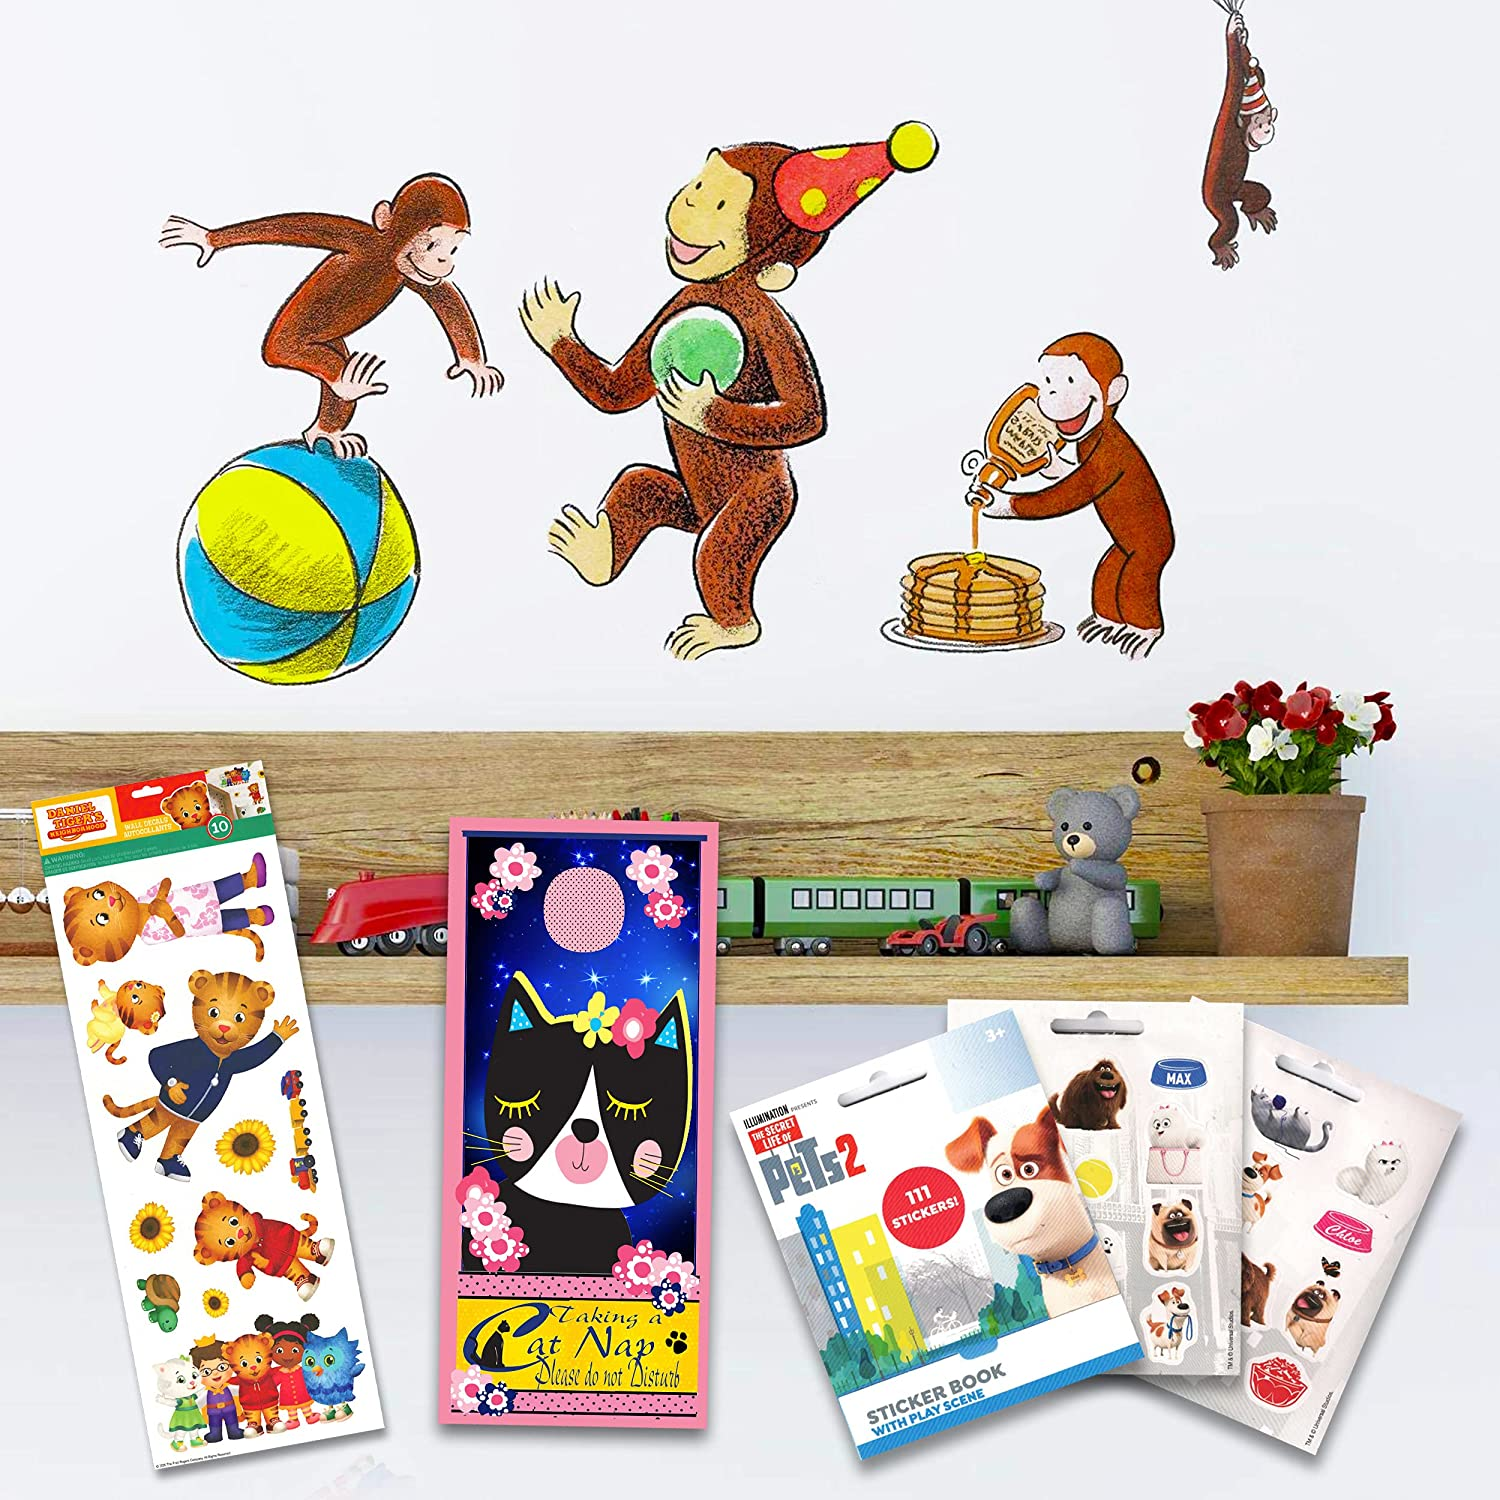 RoomMates Curious George Wall Decal Set - 22 Pc Curious George Room Decor Bundle with Bonus Daniel Tiger Decals and Secret Life of Pets Stickers! (RoomMates Curious George)